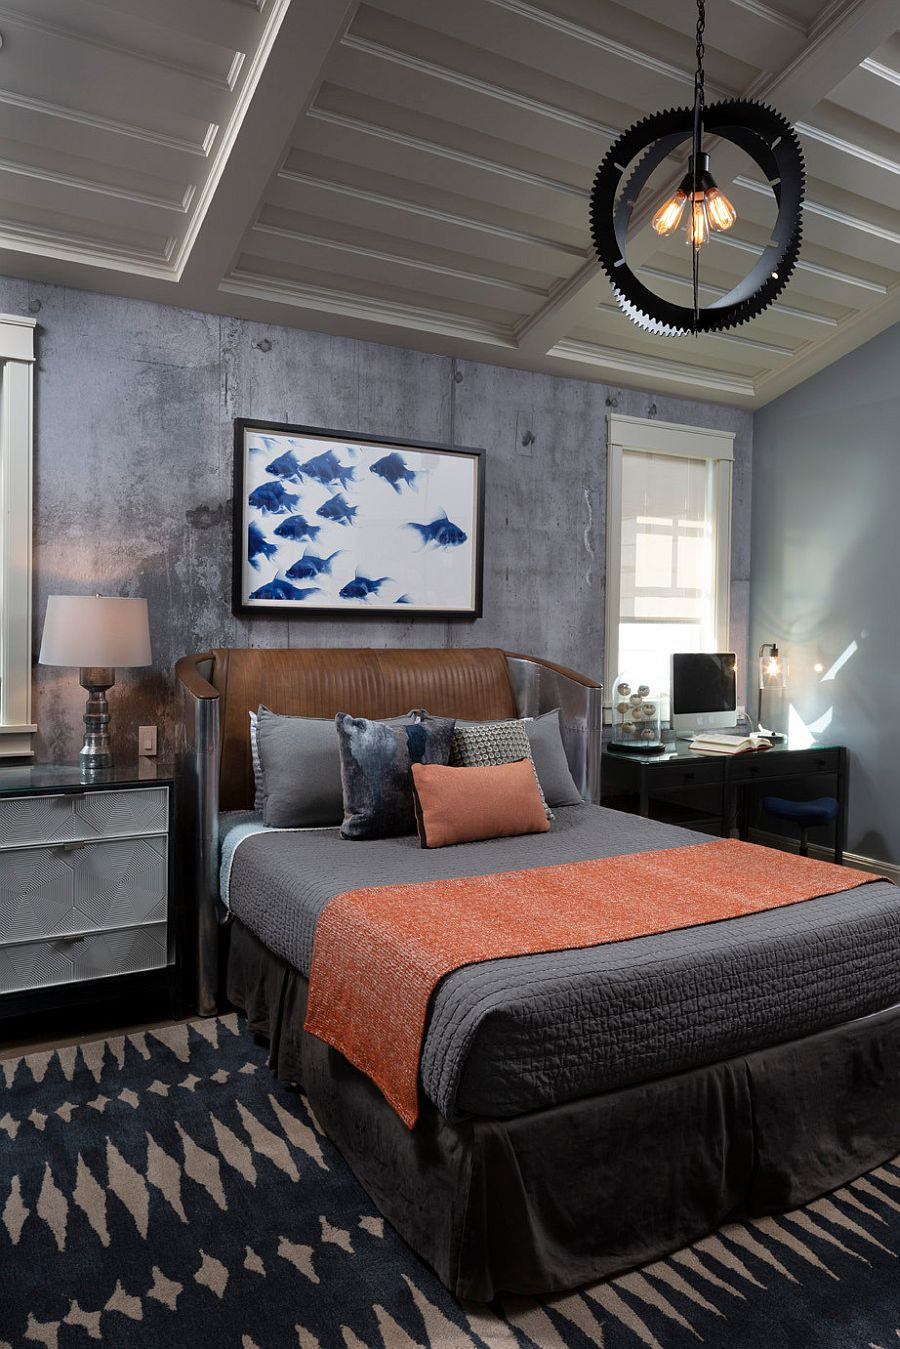 Teen boys' bedroom with modern industrial style